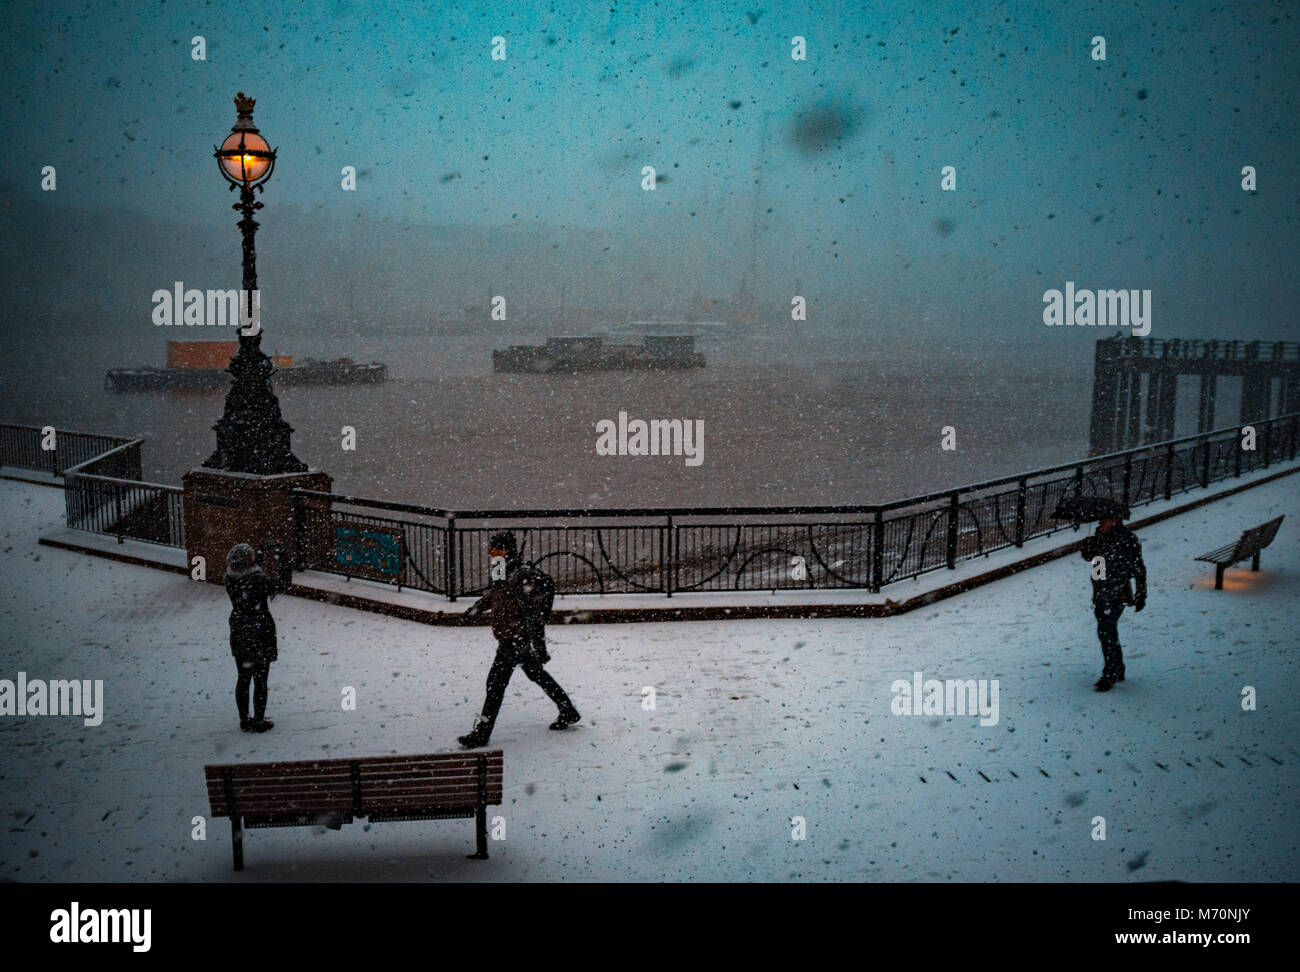 The Beast from the East hit London, a snow covered embankment walk by the River Thames,2nd March 2018 - Stock Image